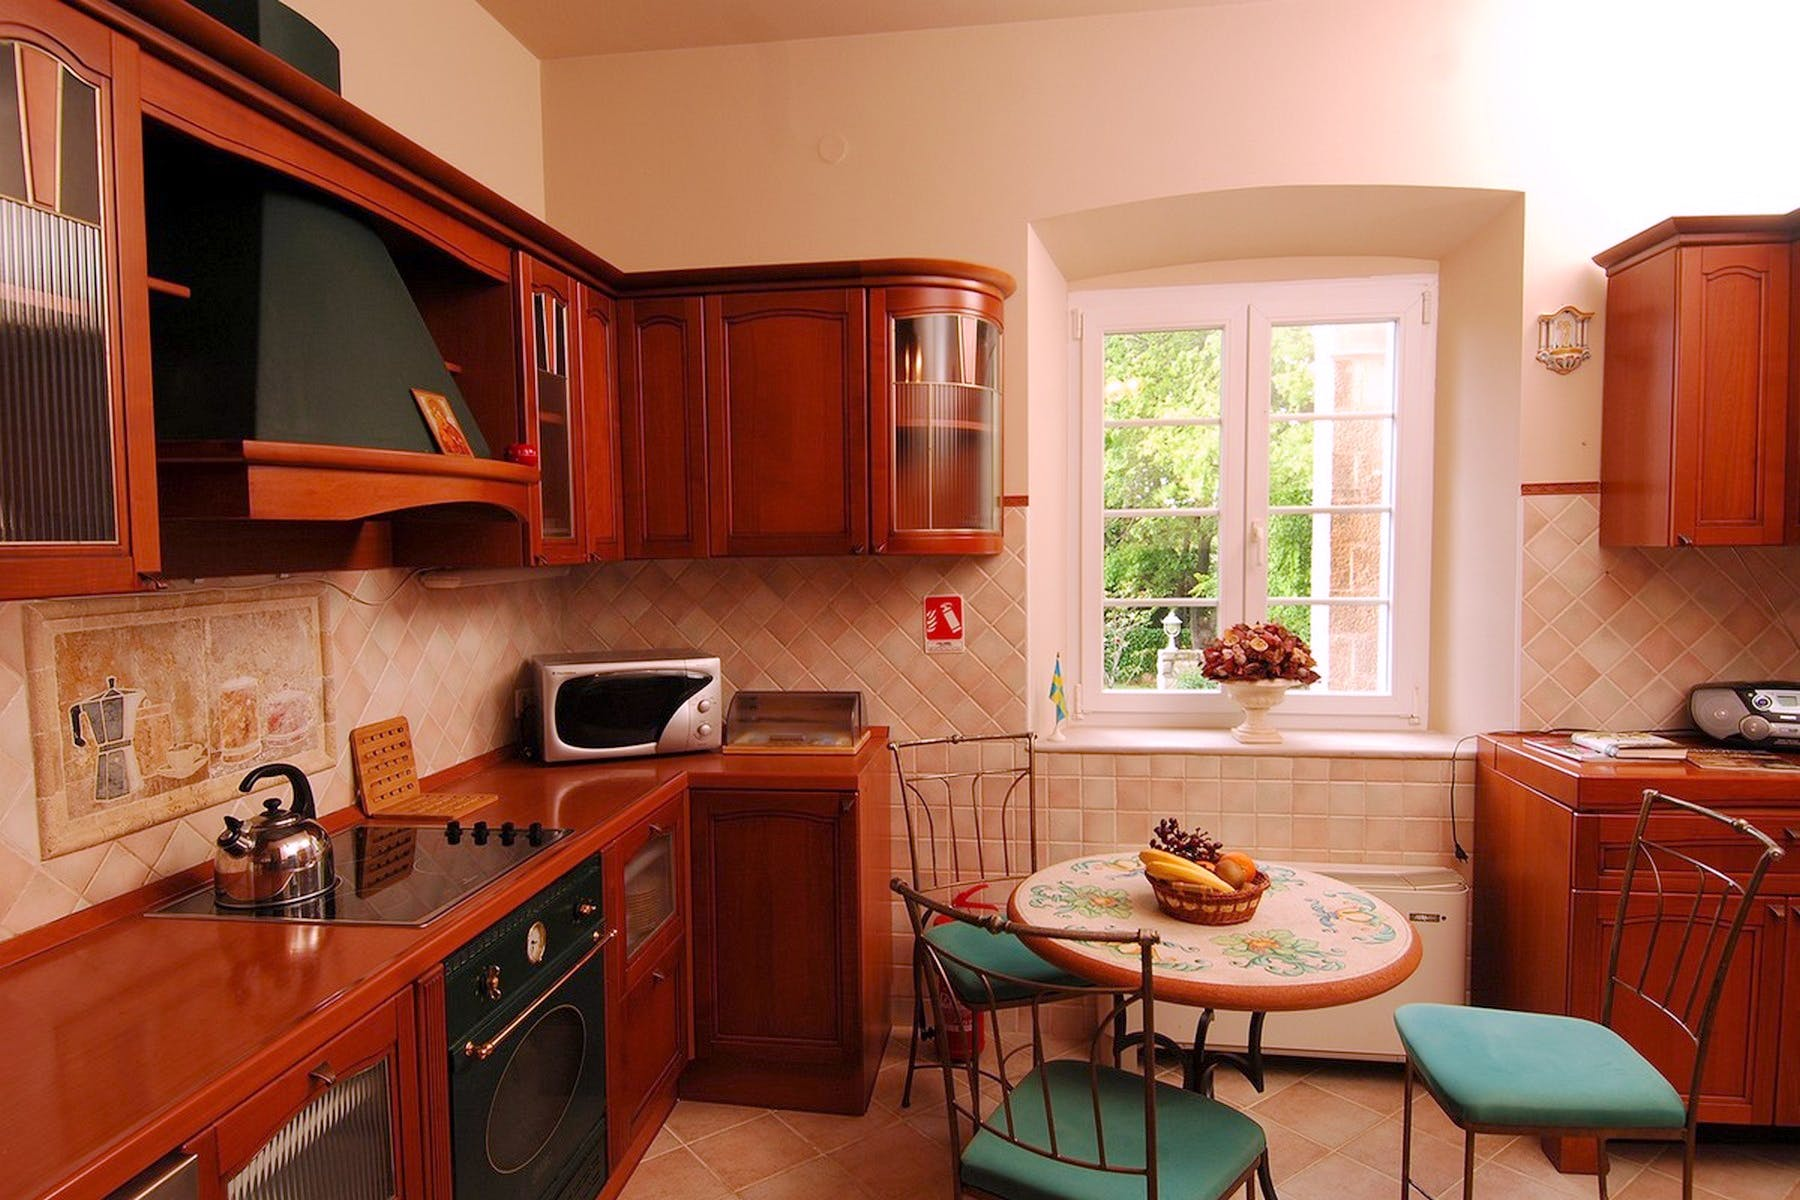 A kitchen with all the necessary amenities